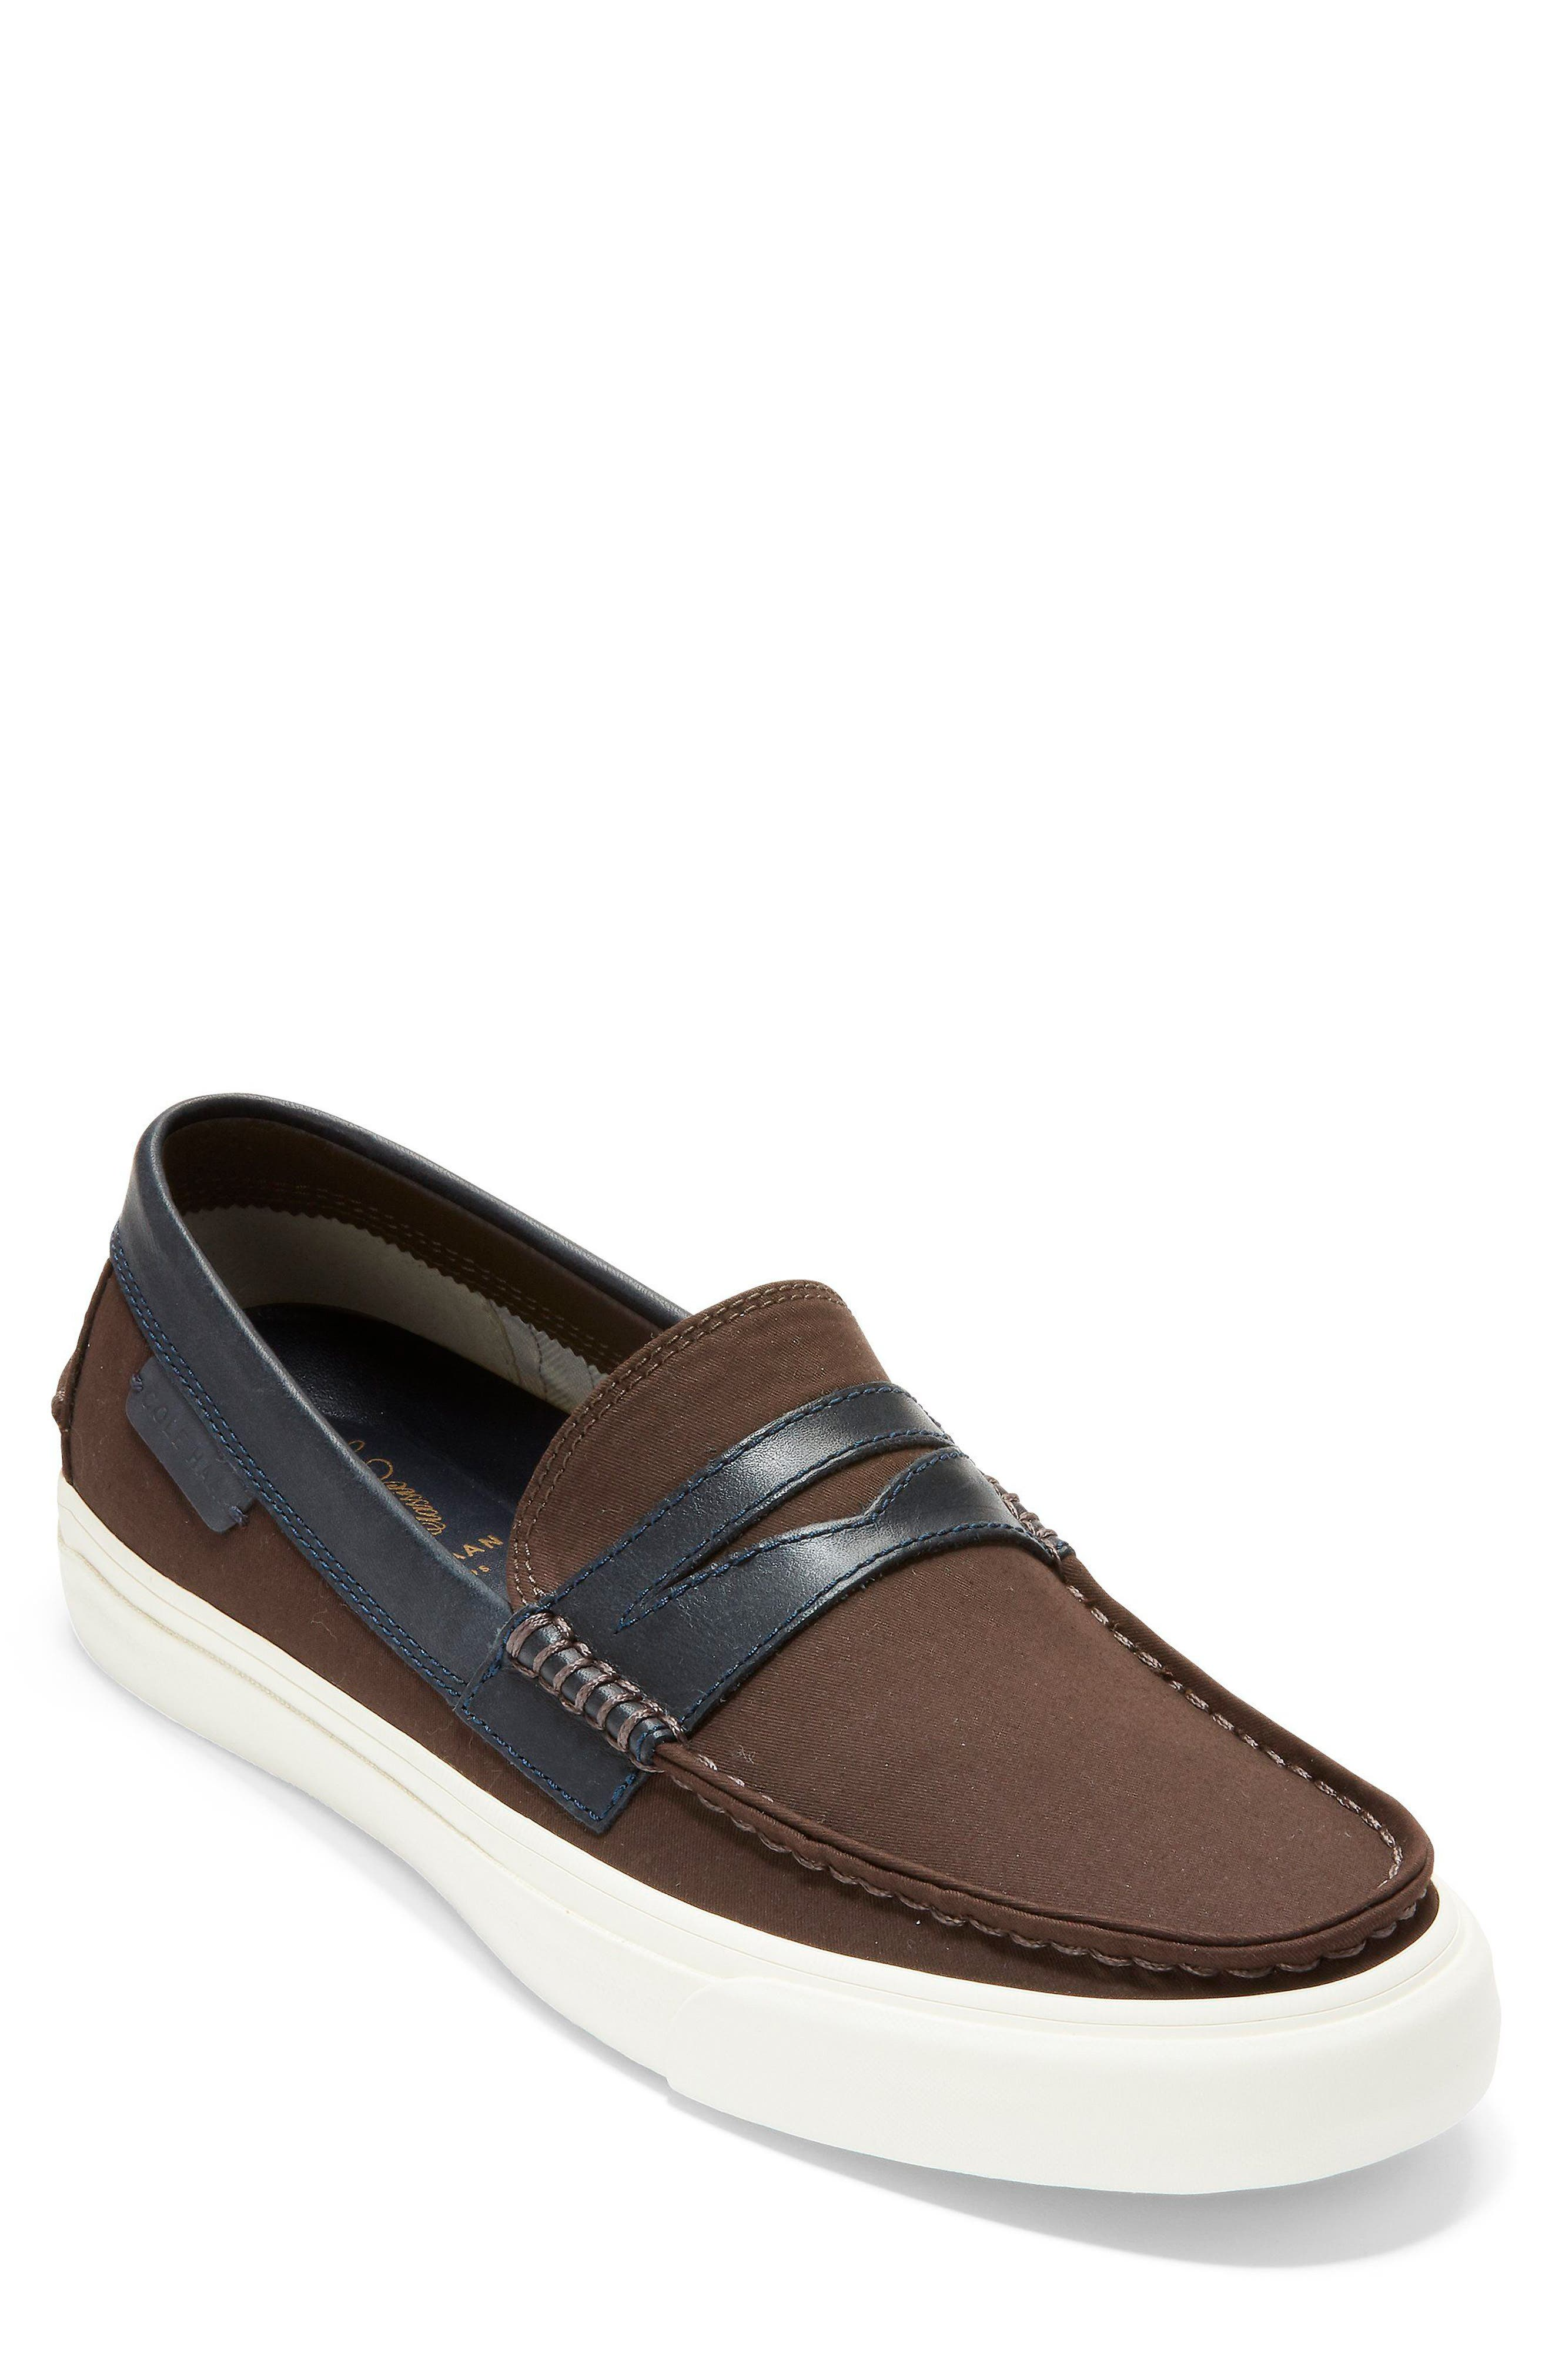 Pinch Weekend LX Penny Loafer,                             Main thumbnail 5, color,